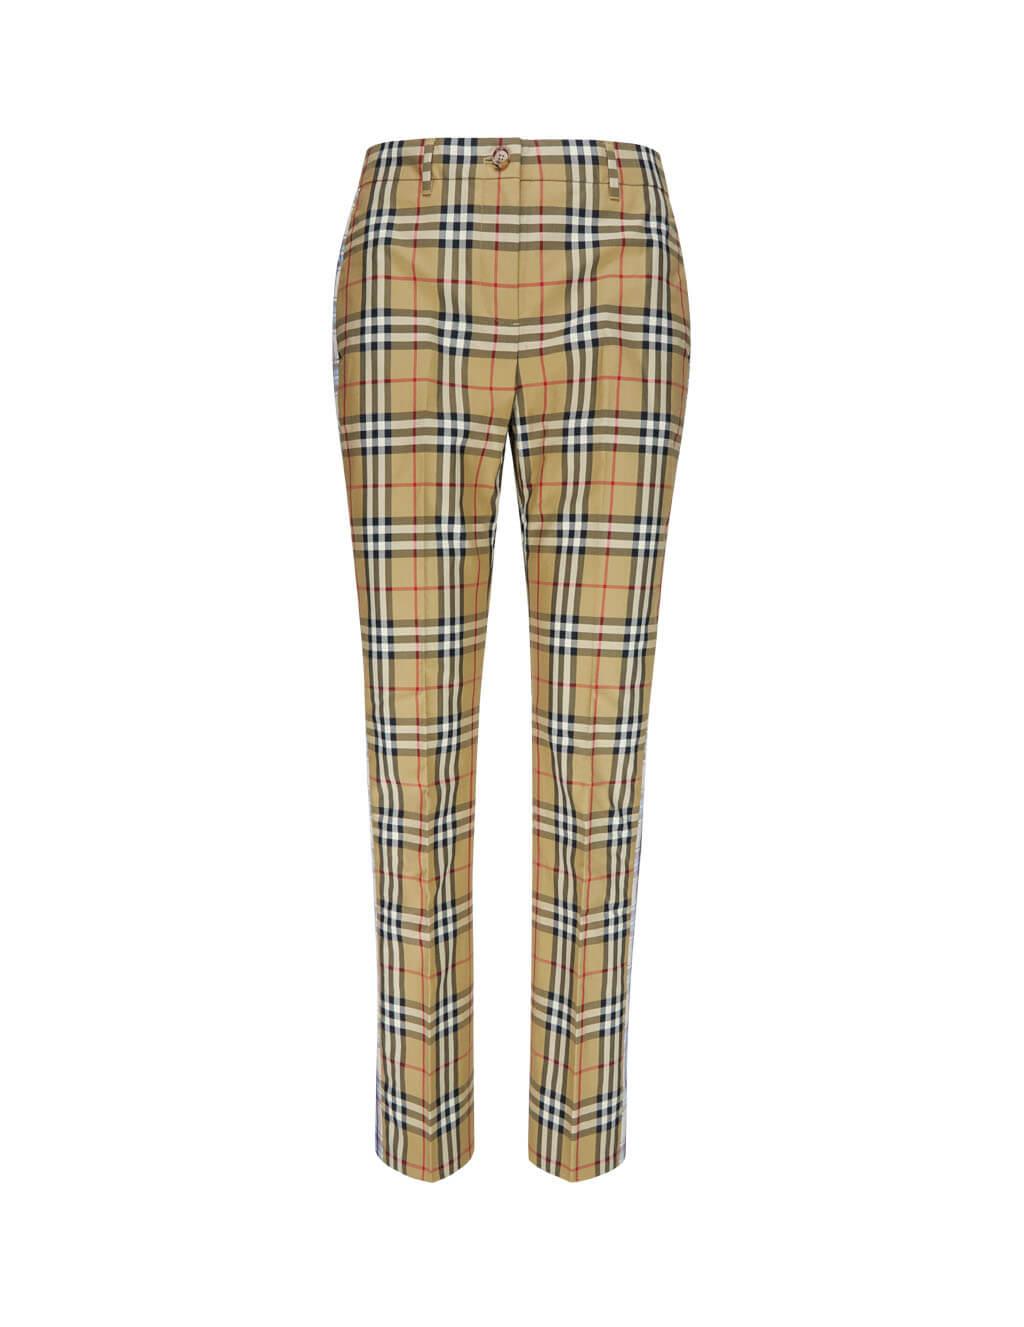 Burberry Women's Giulio Fashion Beige Contrast Check Trousers 8016903A7026